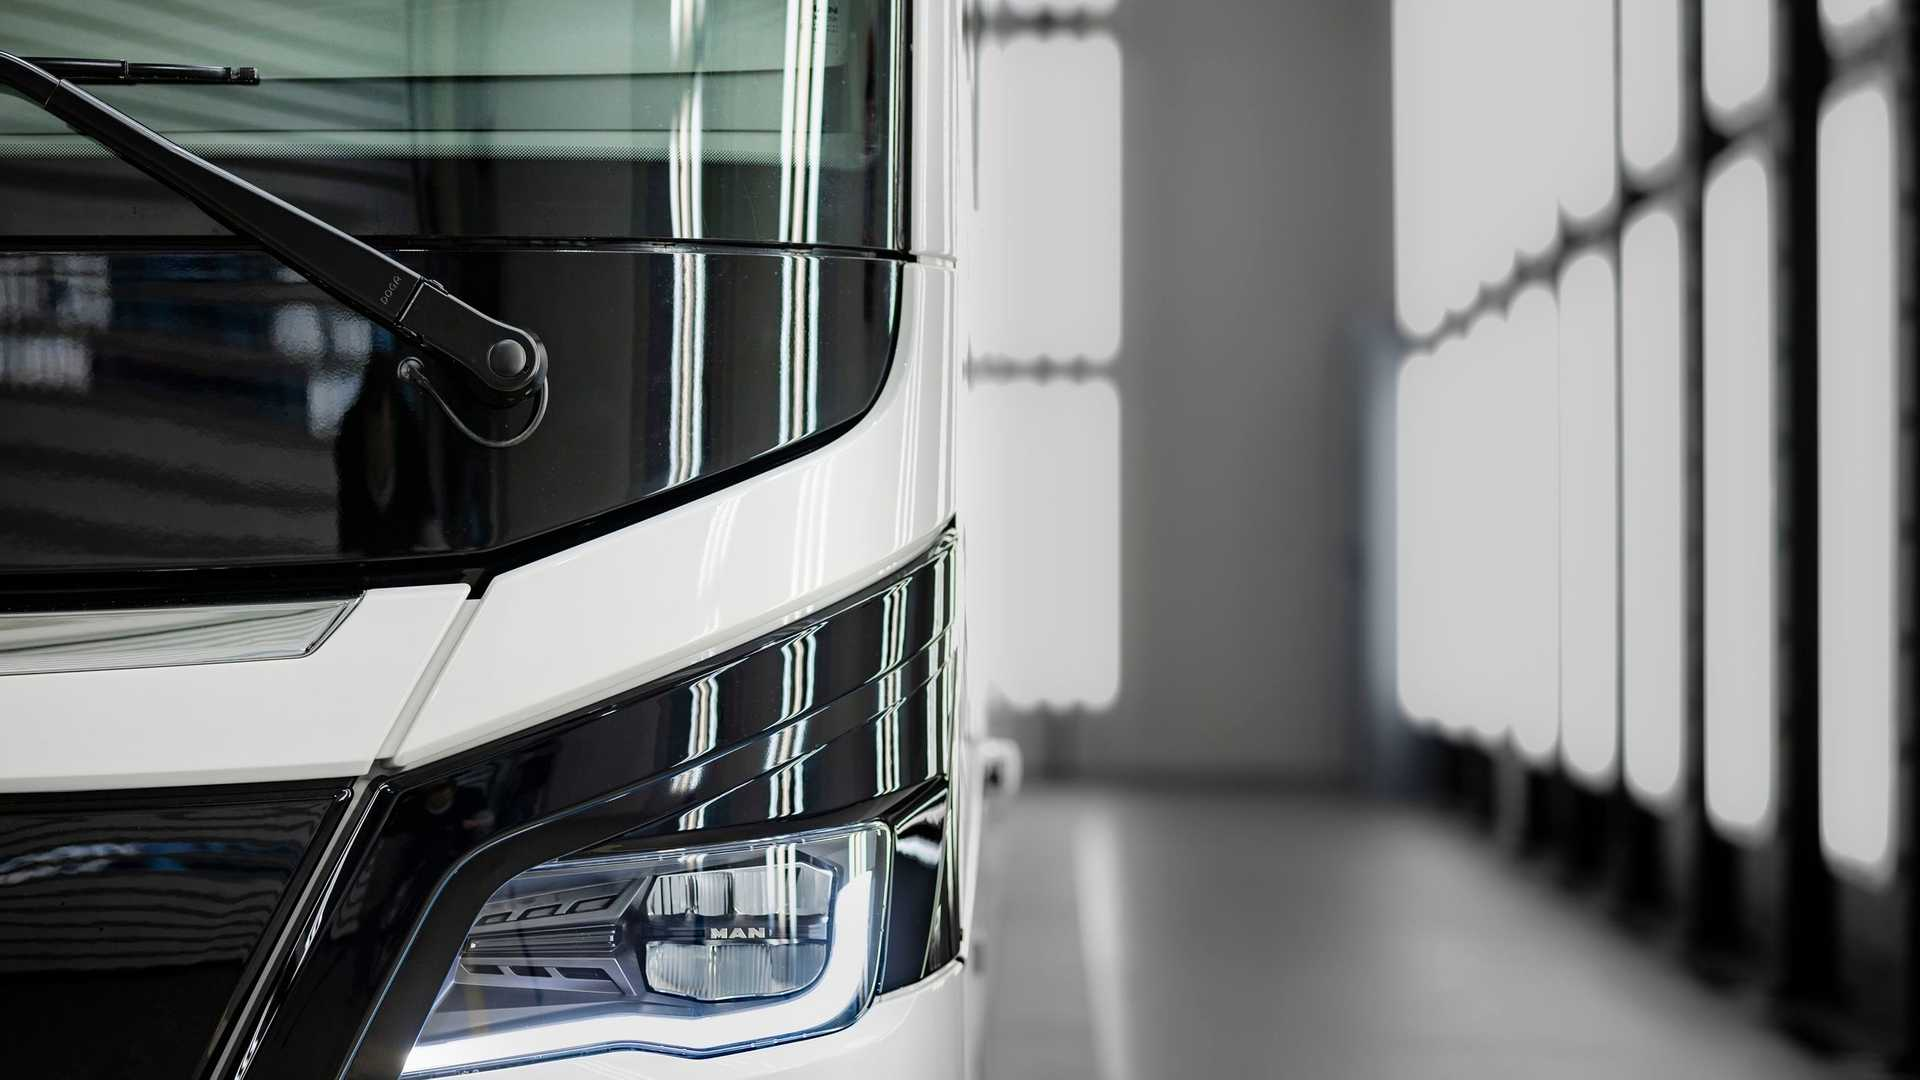 MAN electric bus production